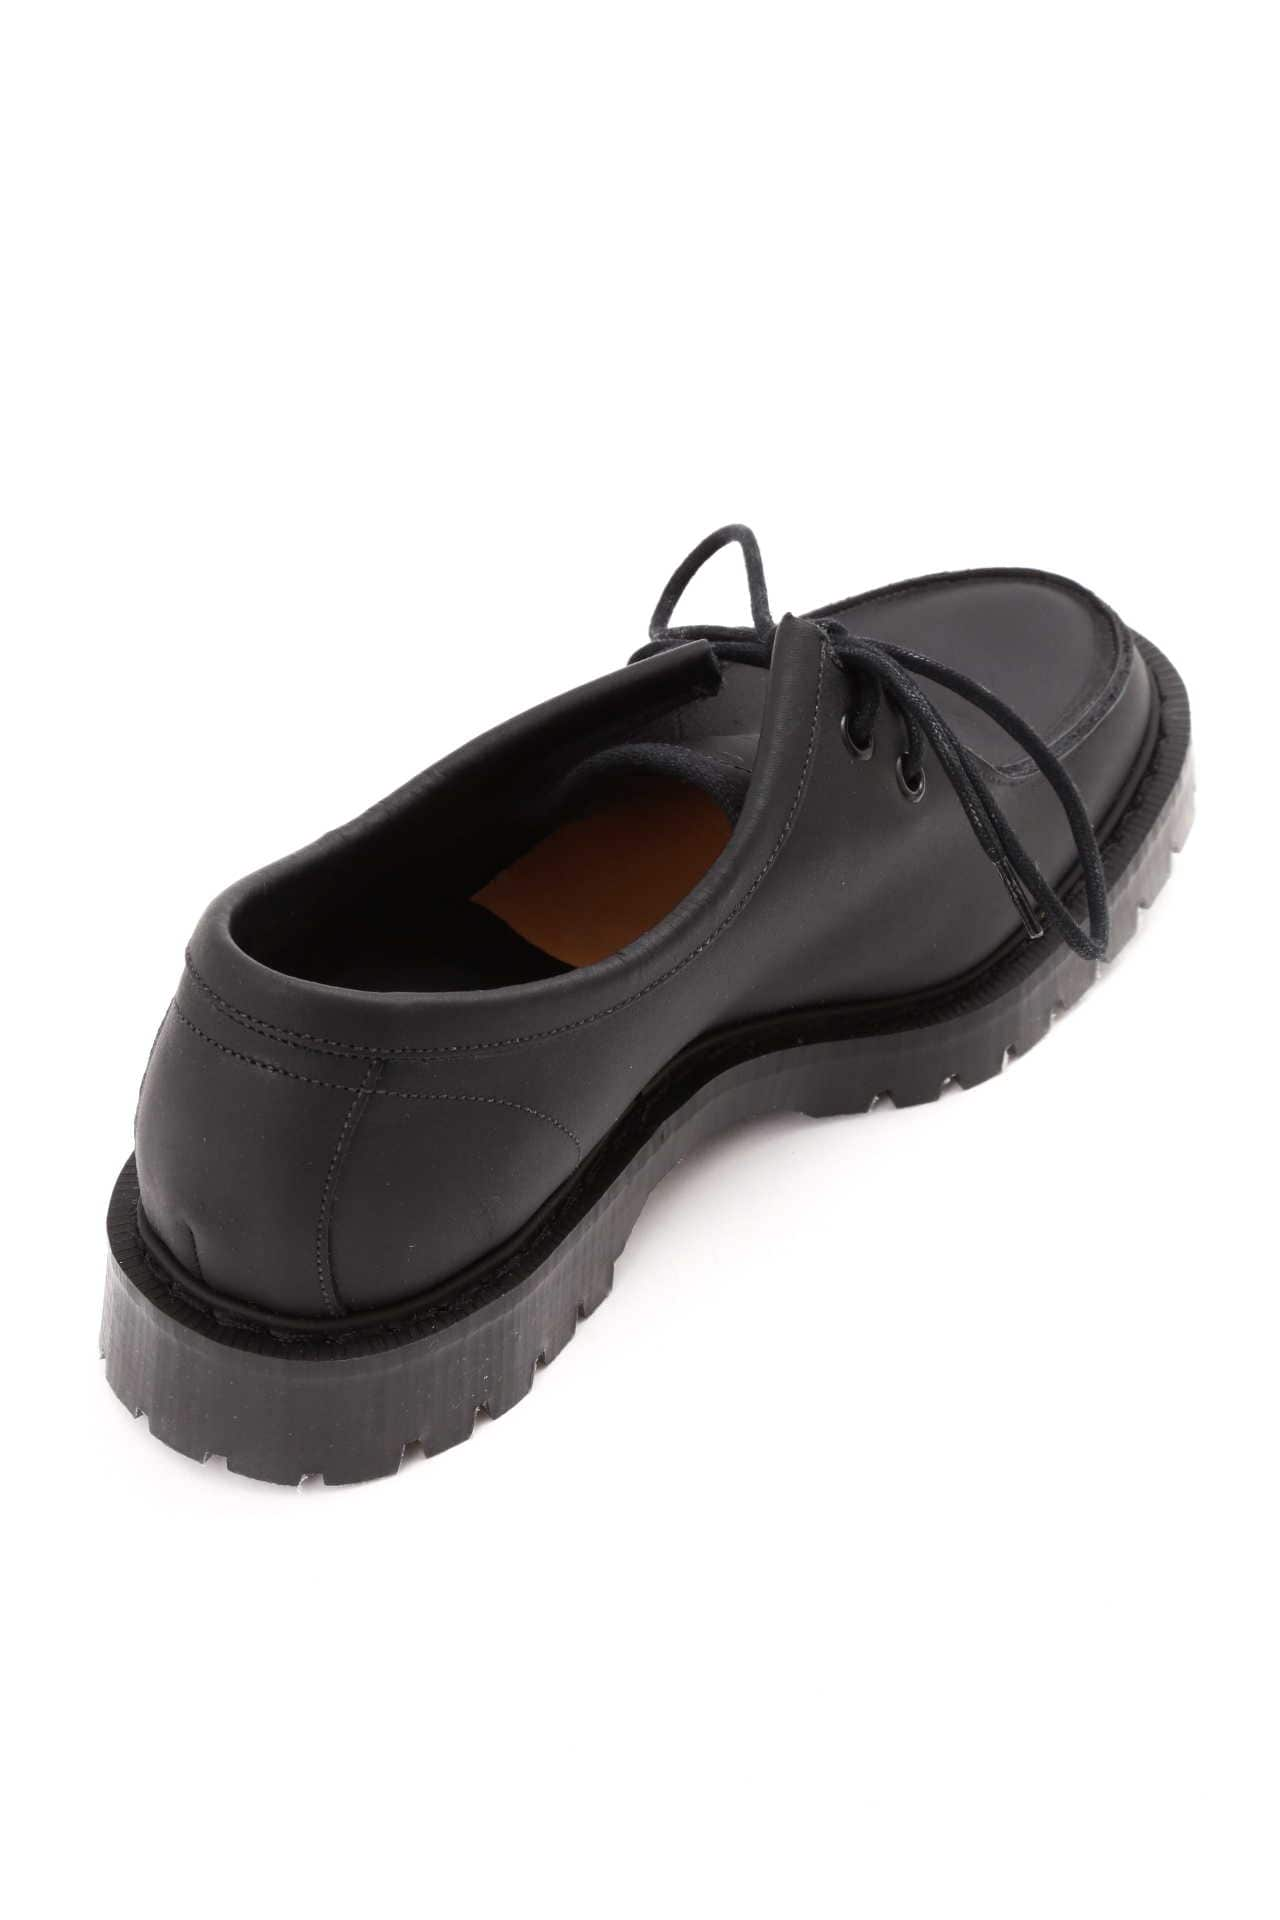 MHL MOCCASIN SHOE(MHL SHOP限定)3